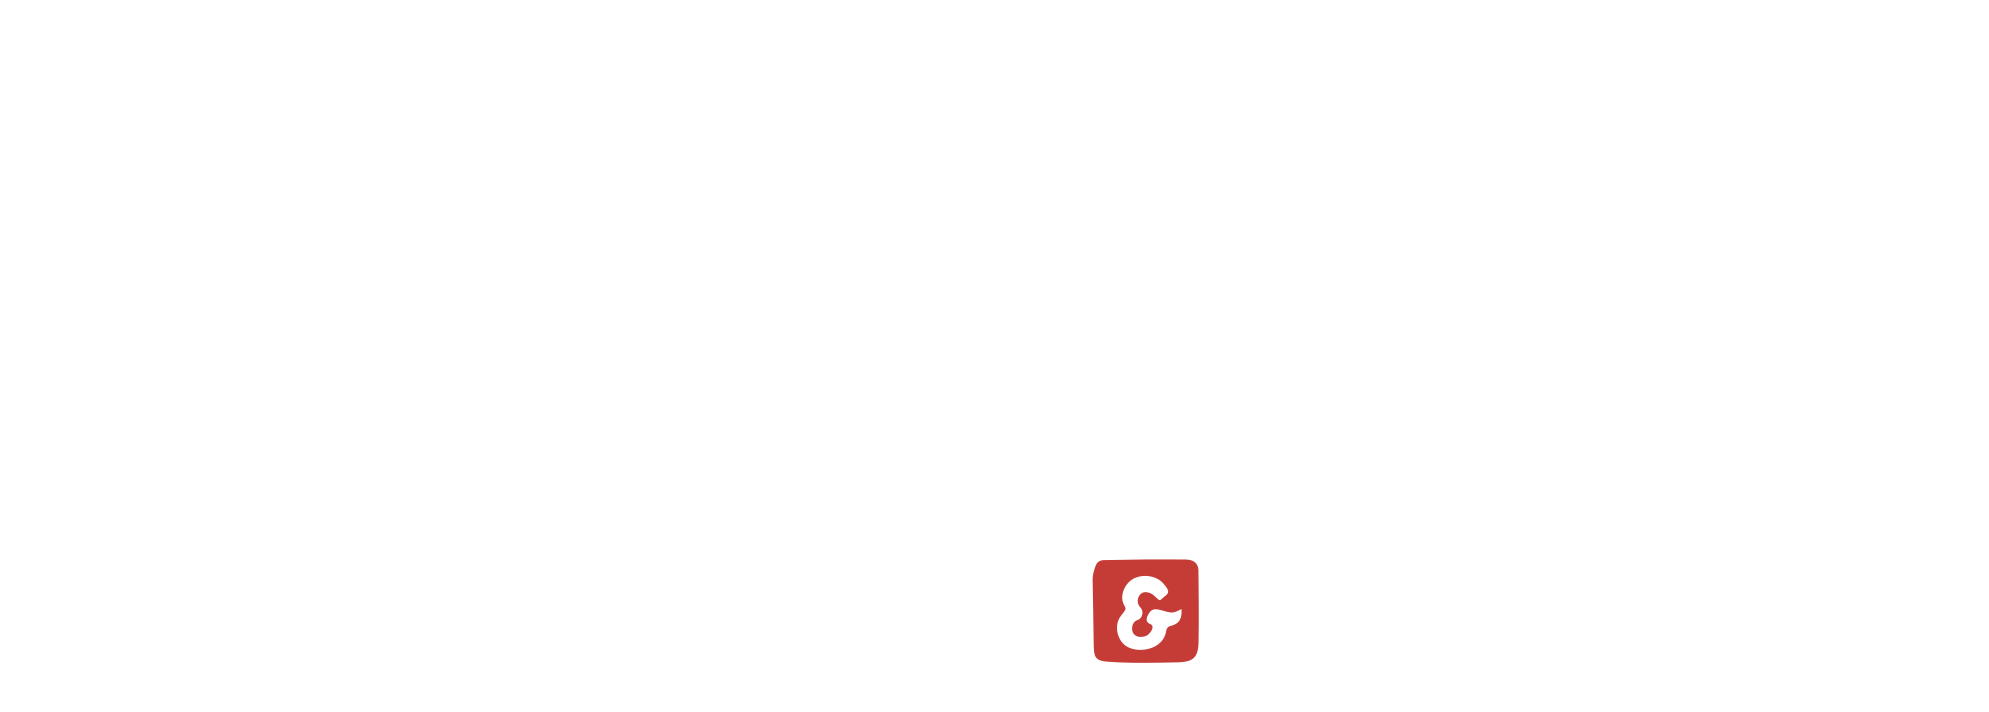 Madness Logo Update.png